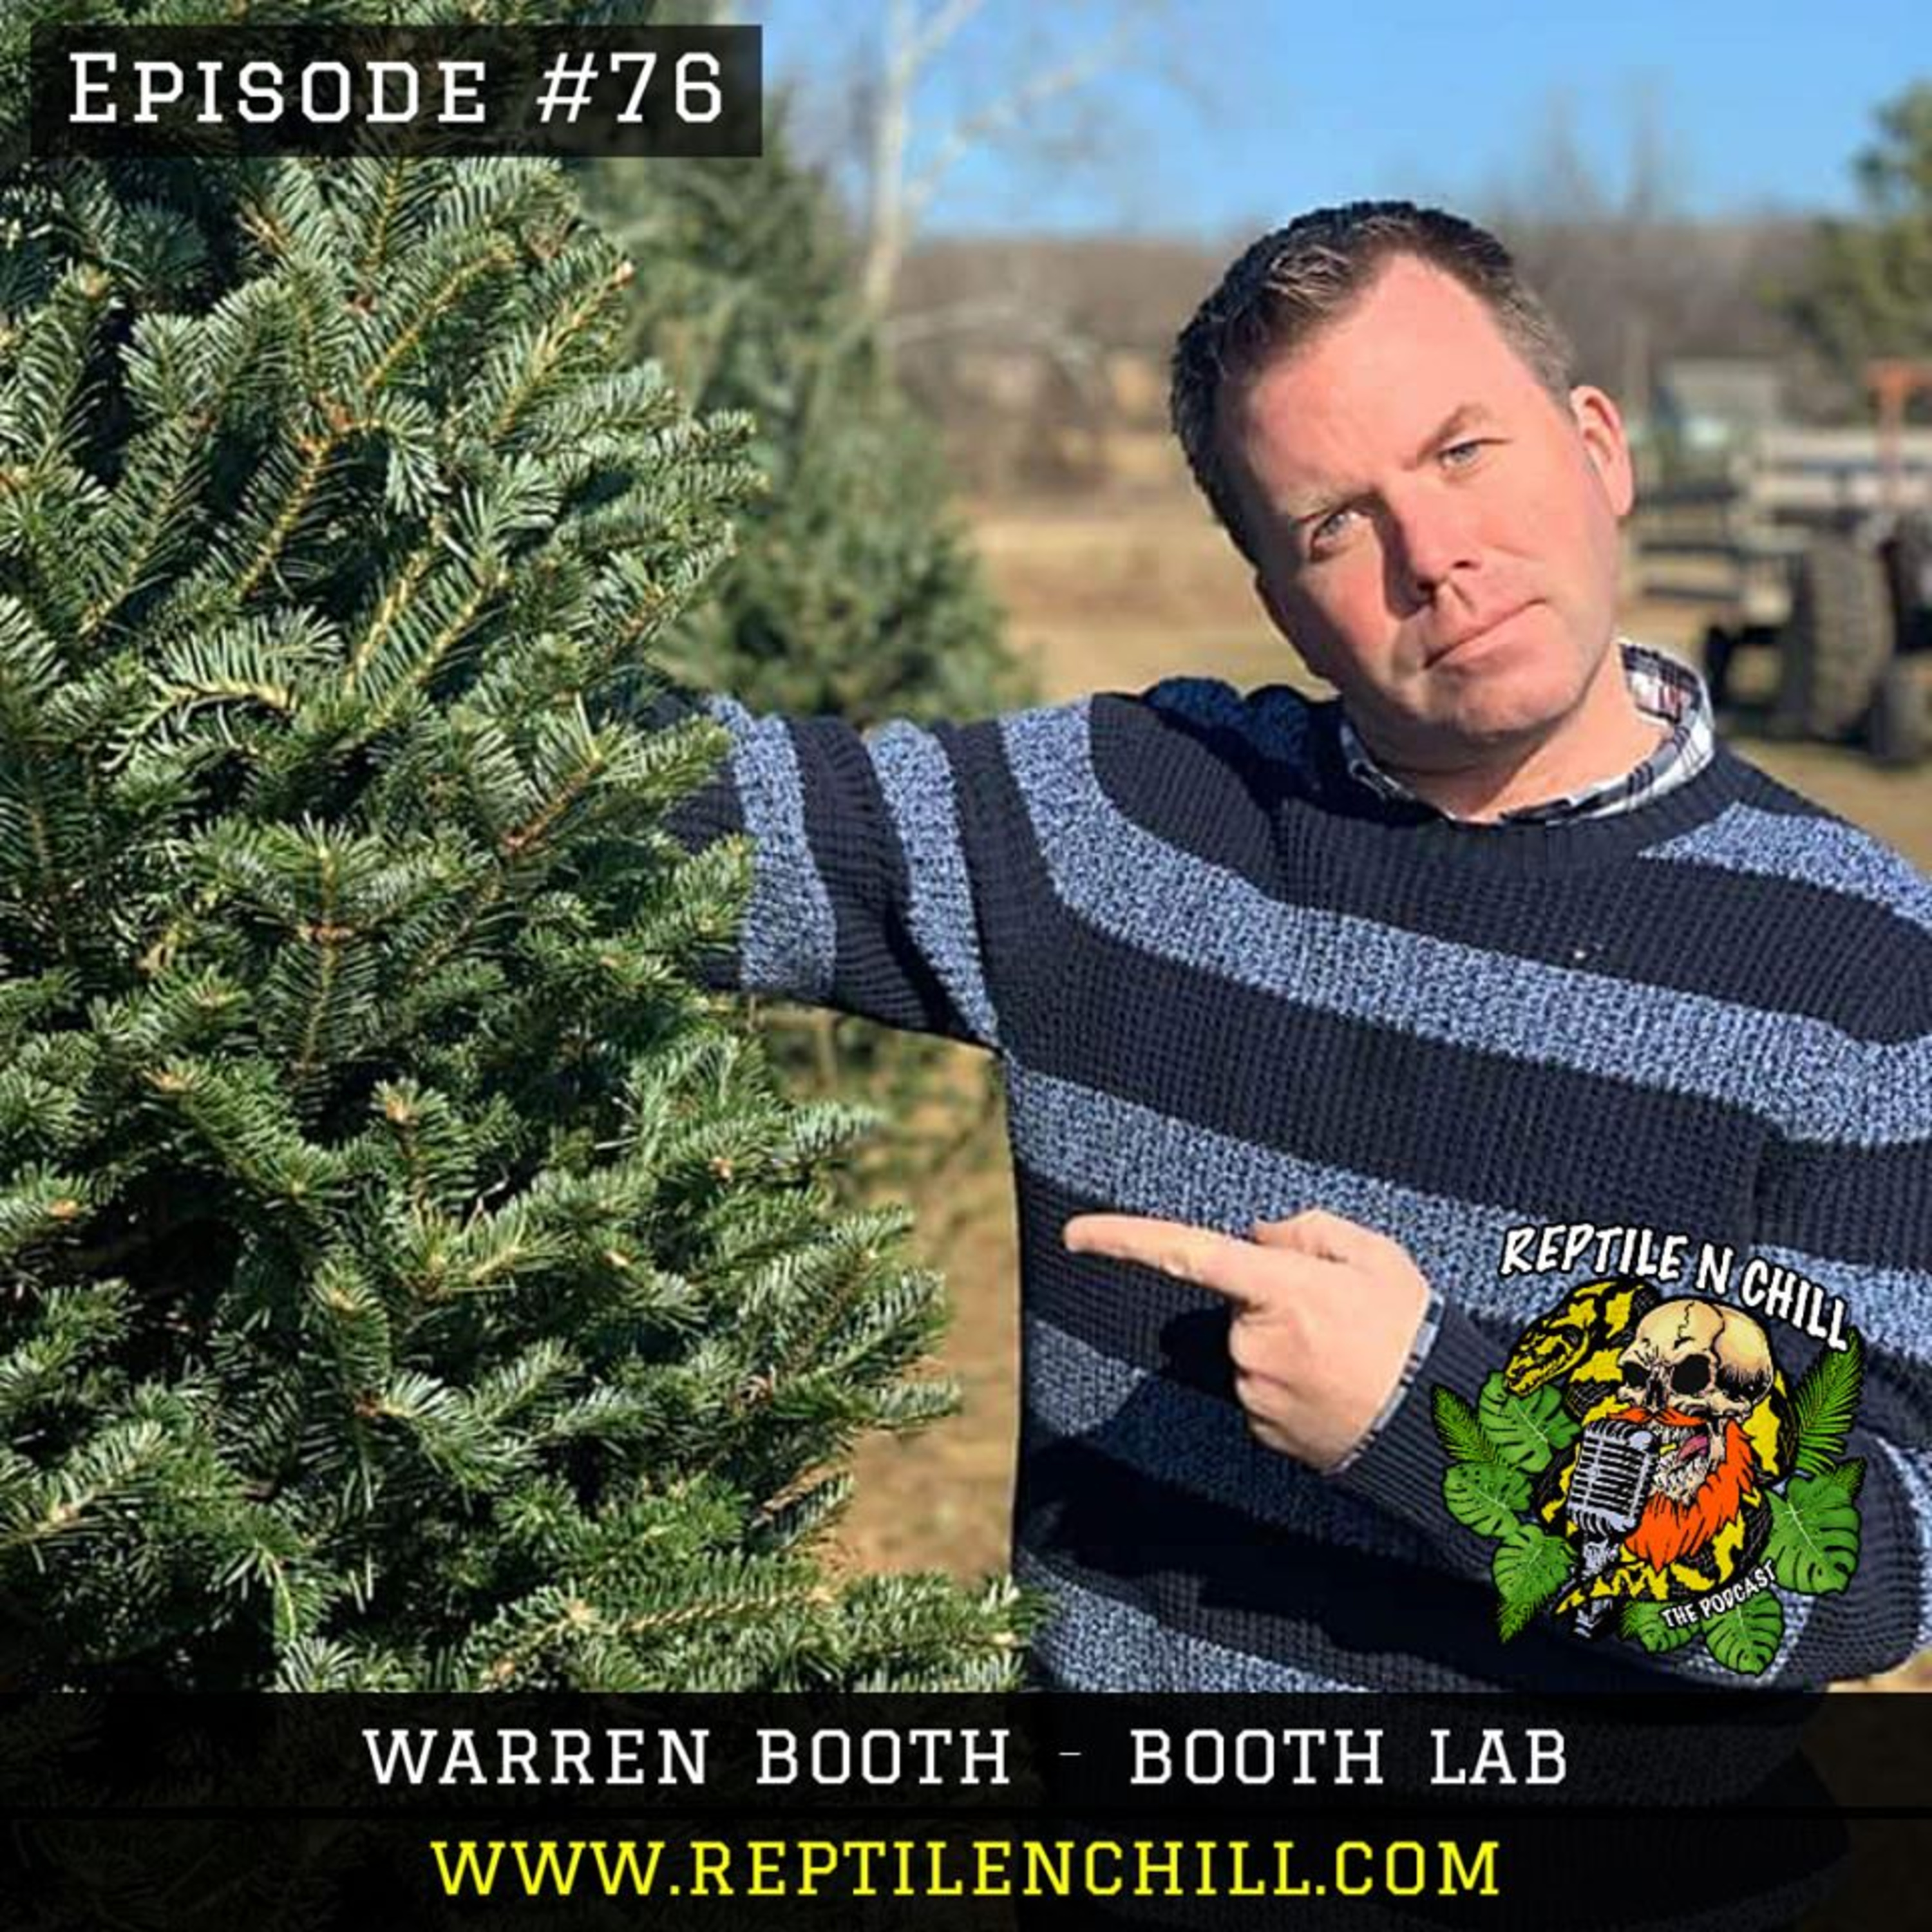 Warren Booth, from Booth Lab! - 76 Reptile n Chill